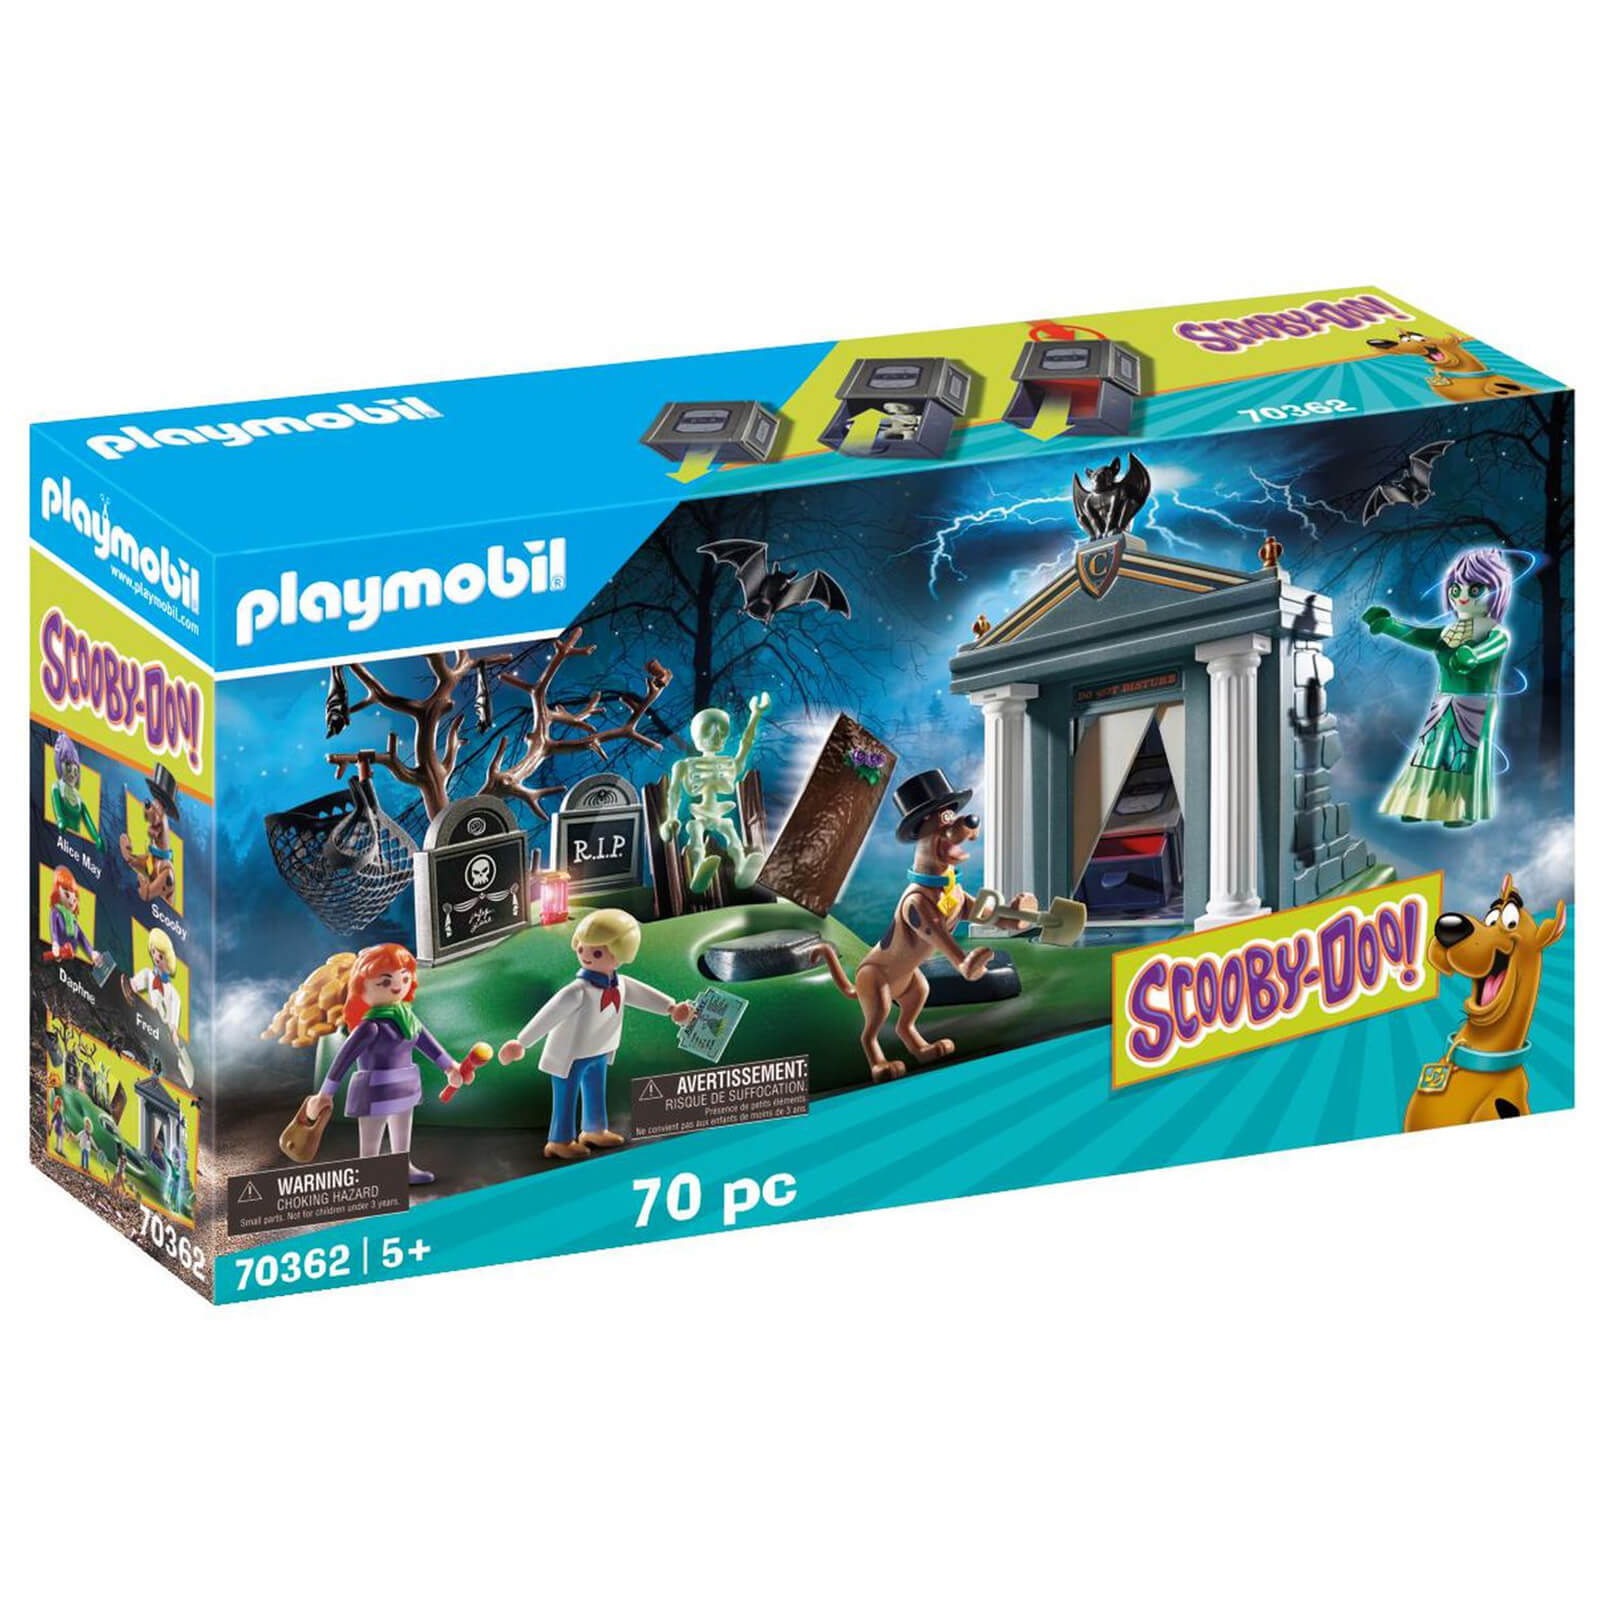 Playmobil Scooby Doo! Adventure On The Cemetery (70362)